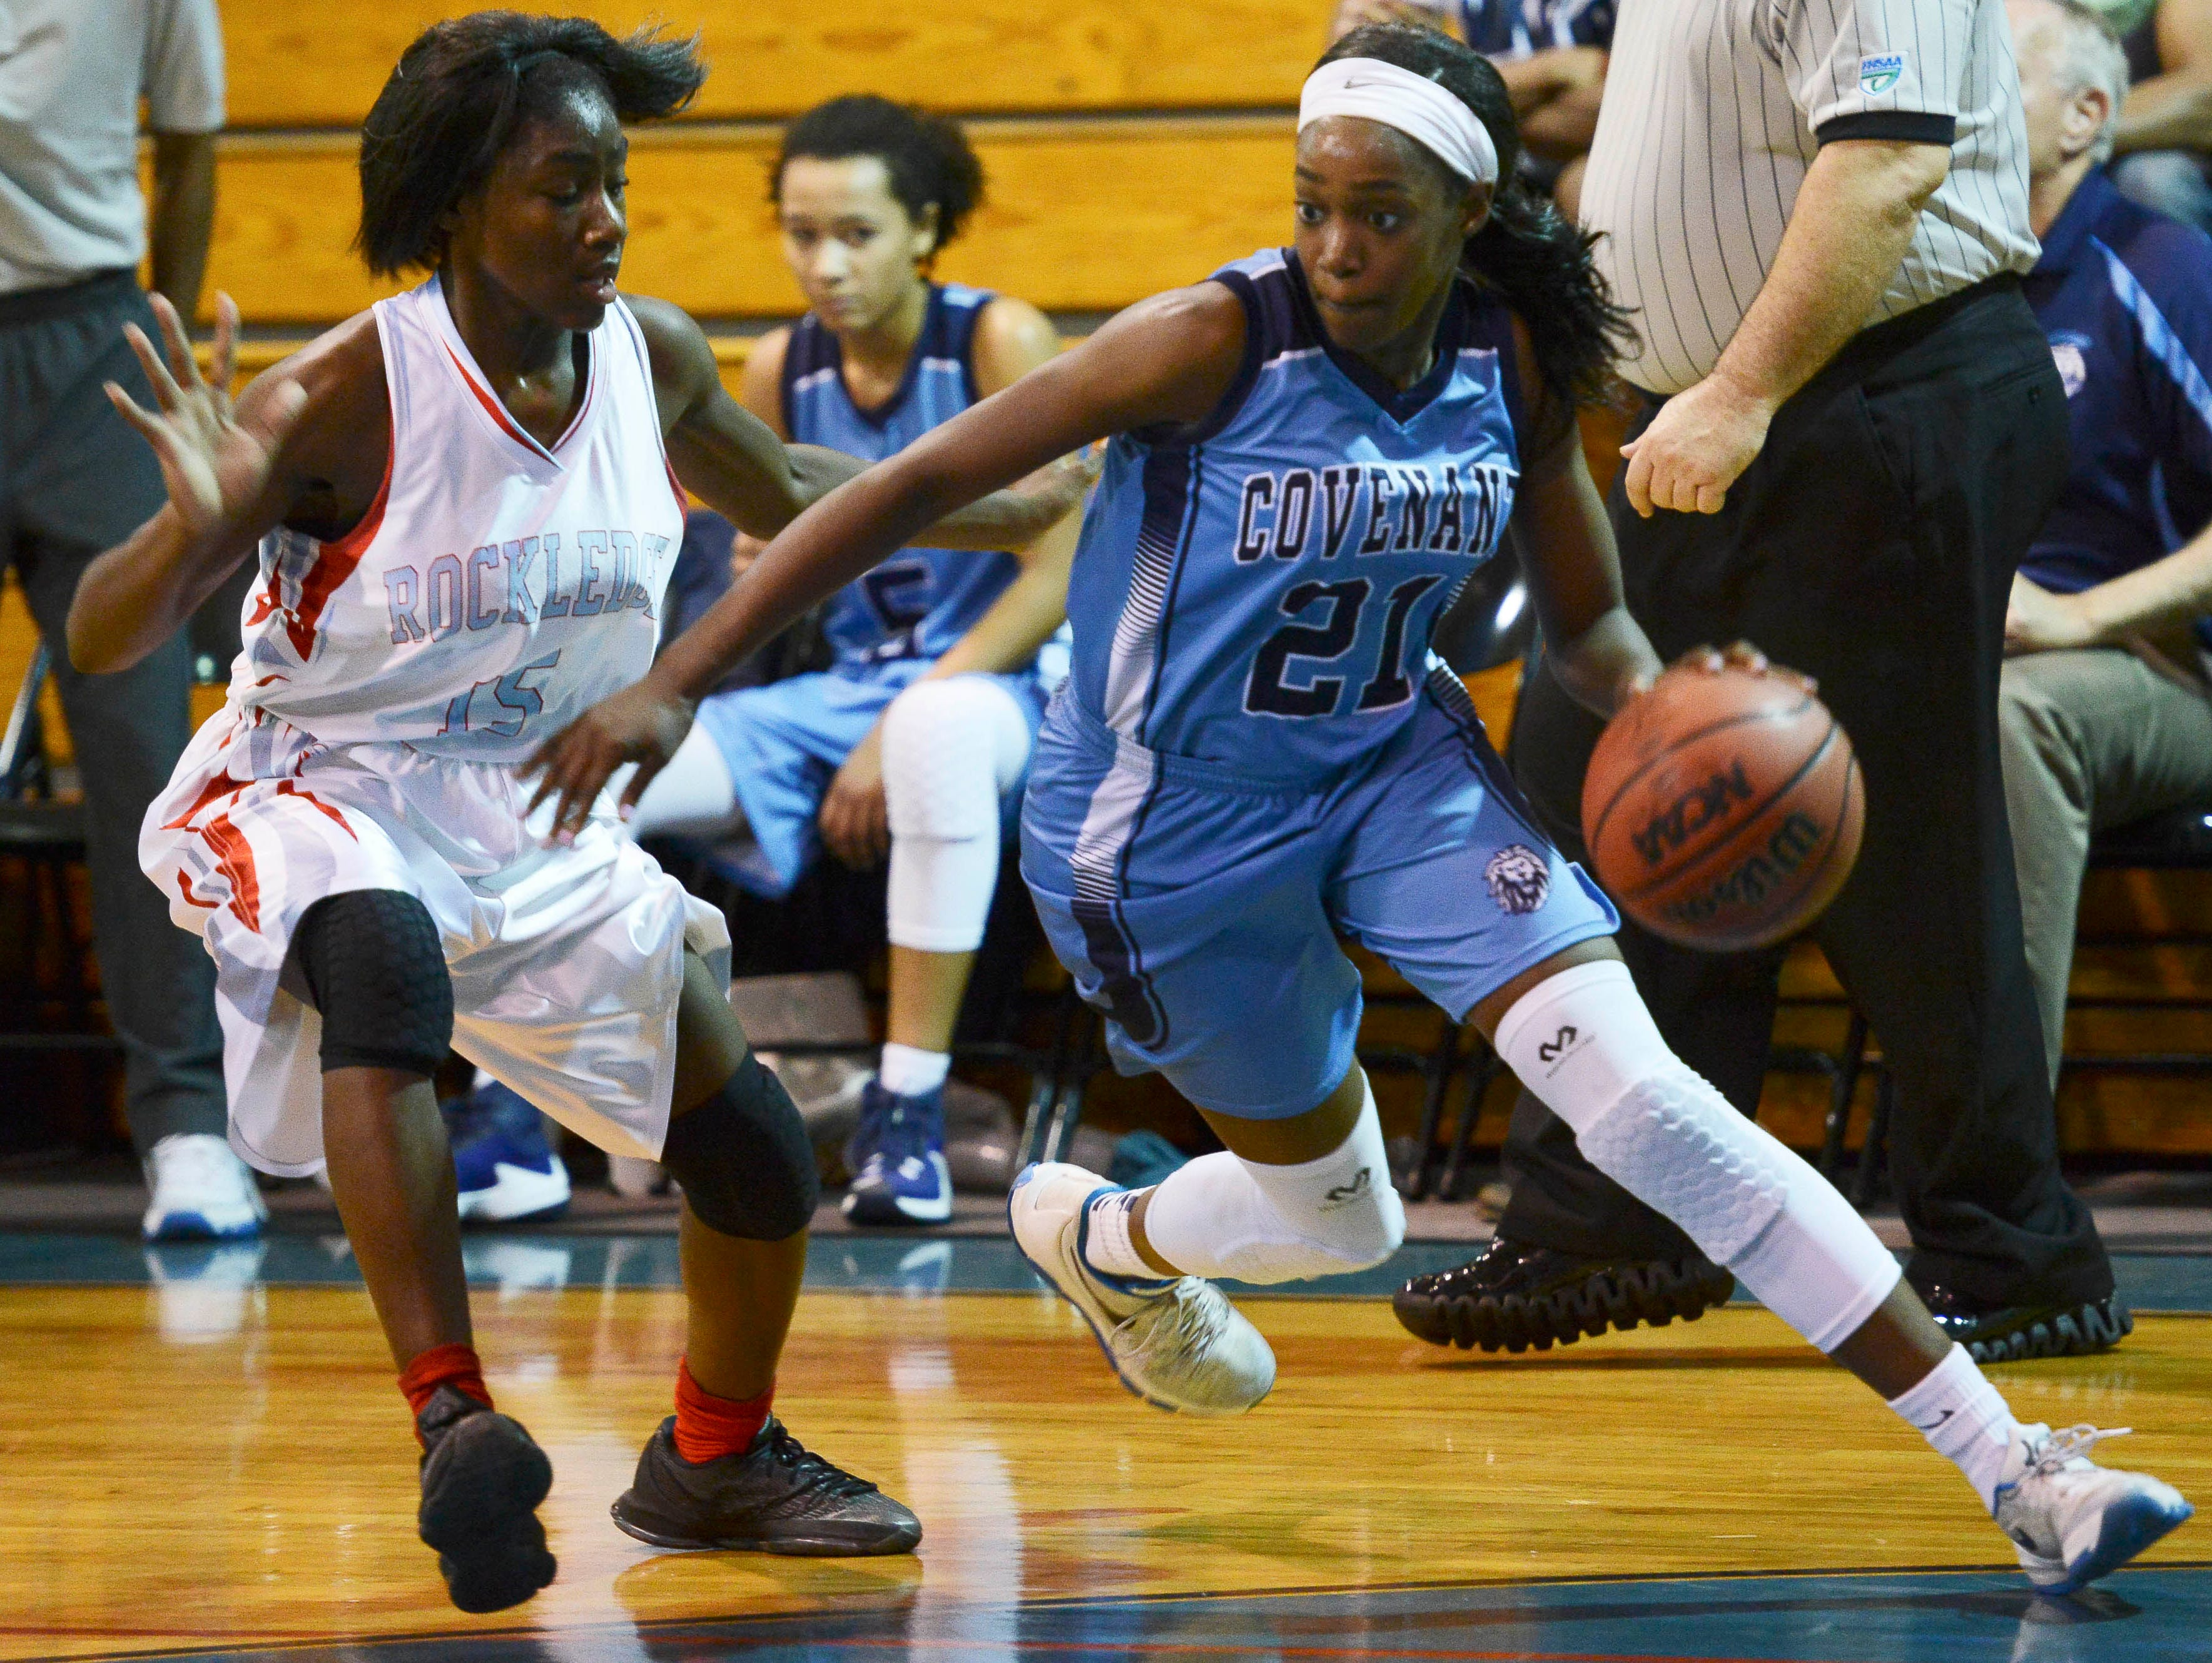 Ashanti Blakely of Rockledge guards Covenant Christian player Jayla Johnson during their game Thursday.